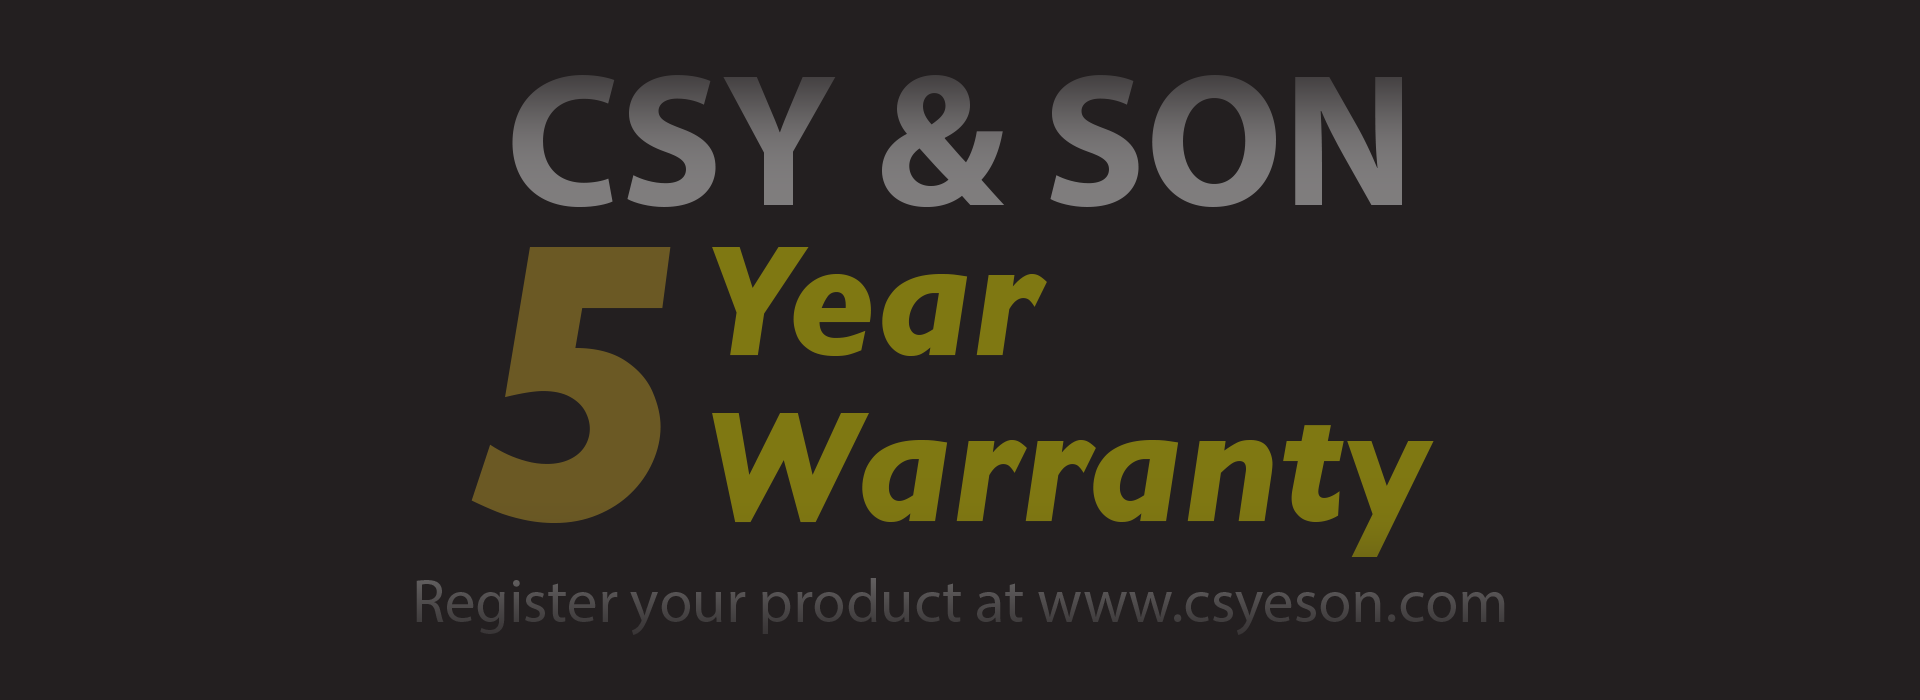 5 YEAR WARRANTY CSY & SON